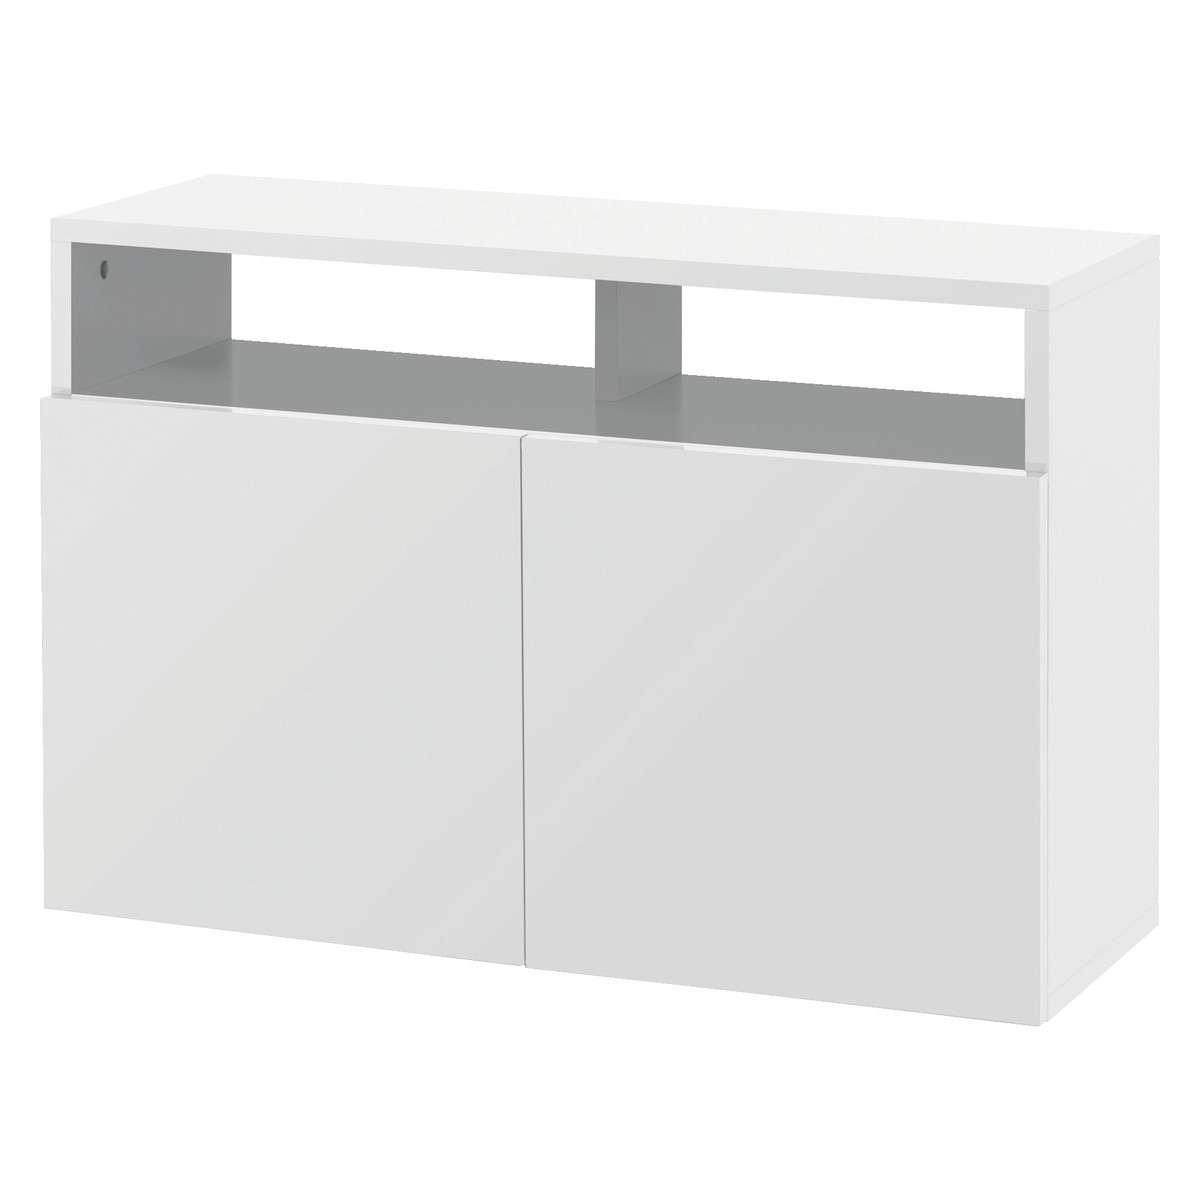 Kubrik White High Gloss Small Sideboard | Buy Now At Habitat Uk With Regard To White Sideboards (Gallery 11 of 20)